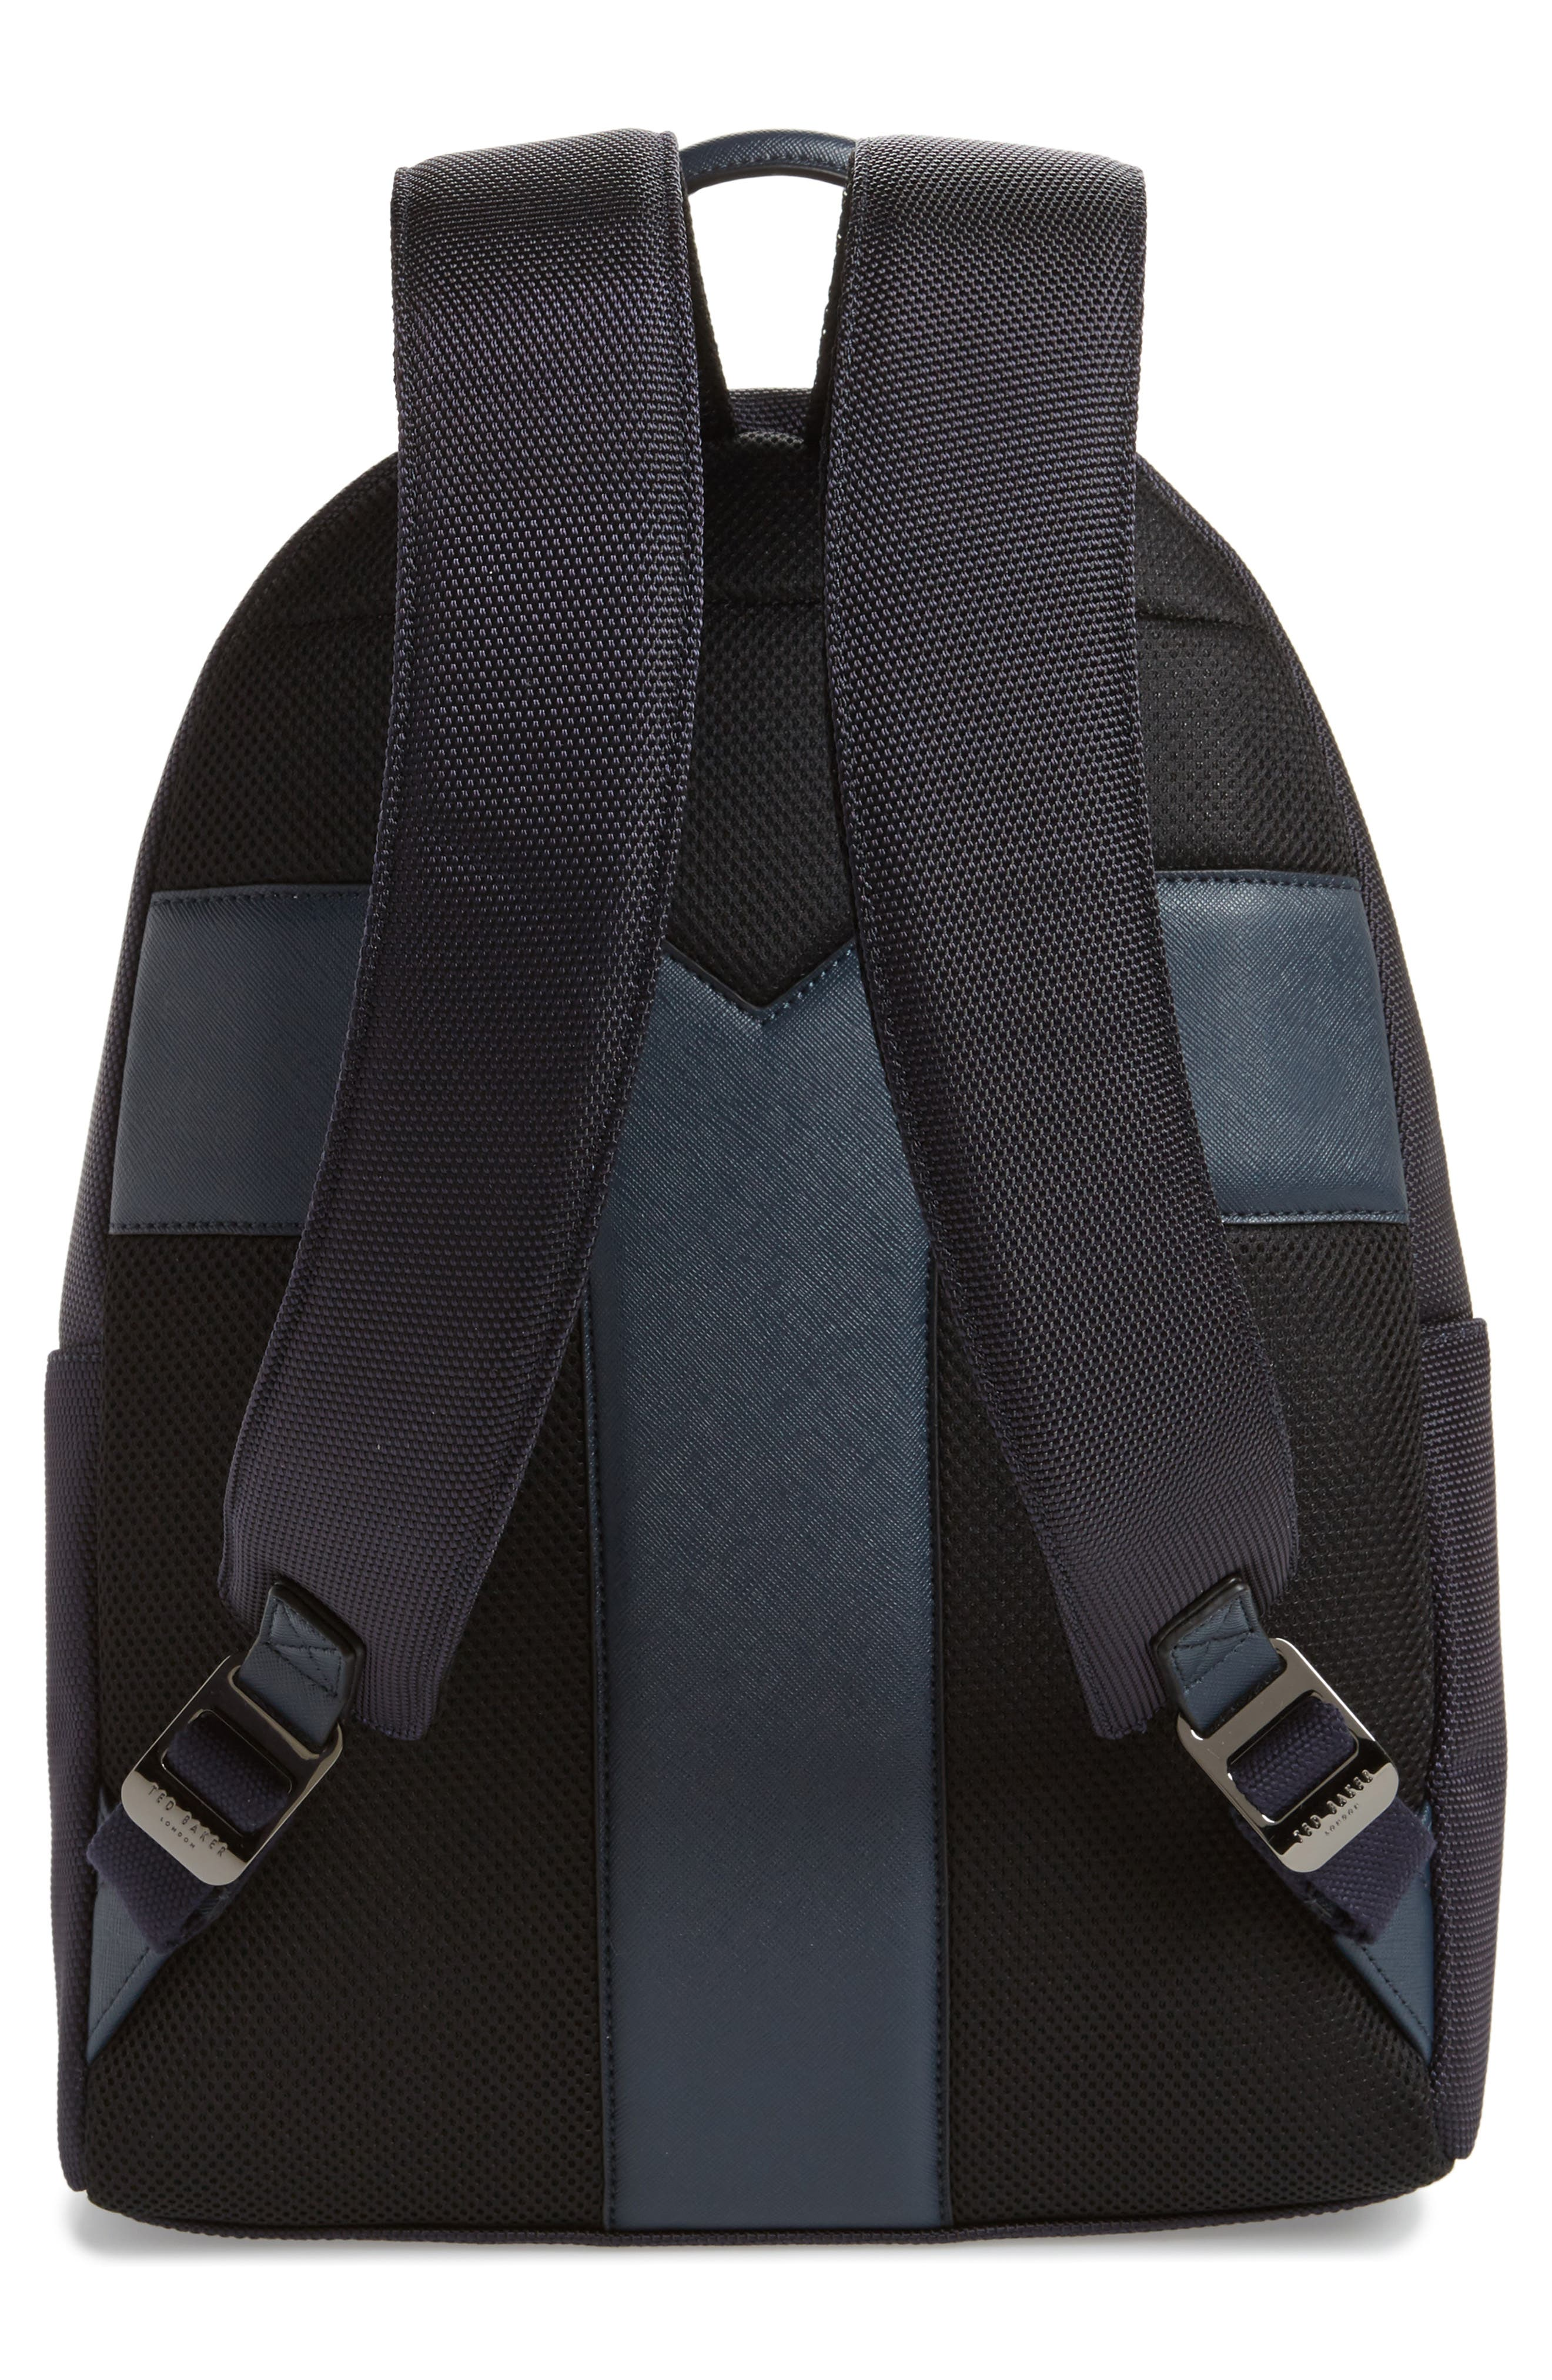 Brakes Backpack,                             Alternate thumbnail 3, color,                             Navy